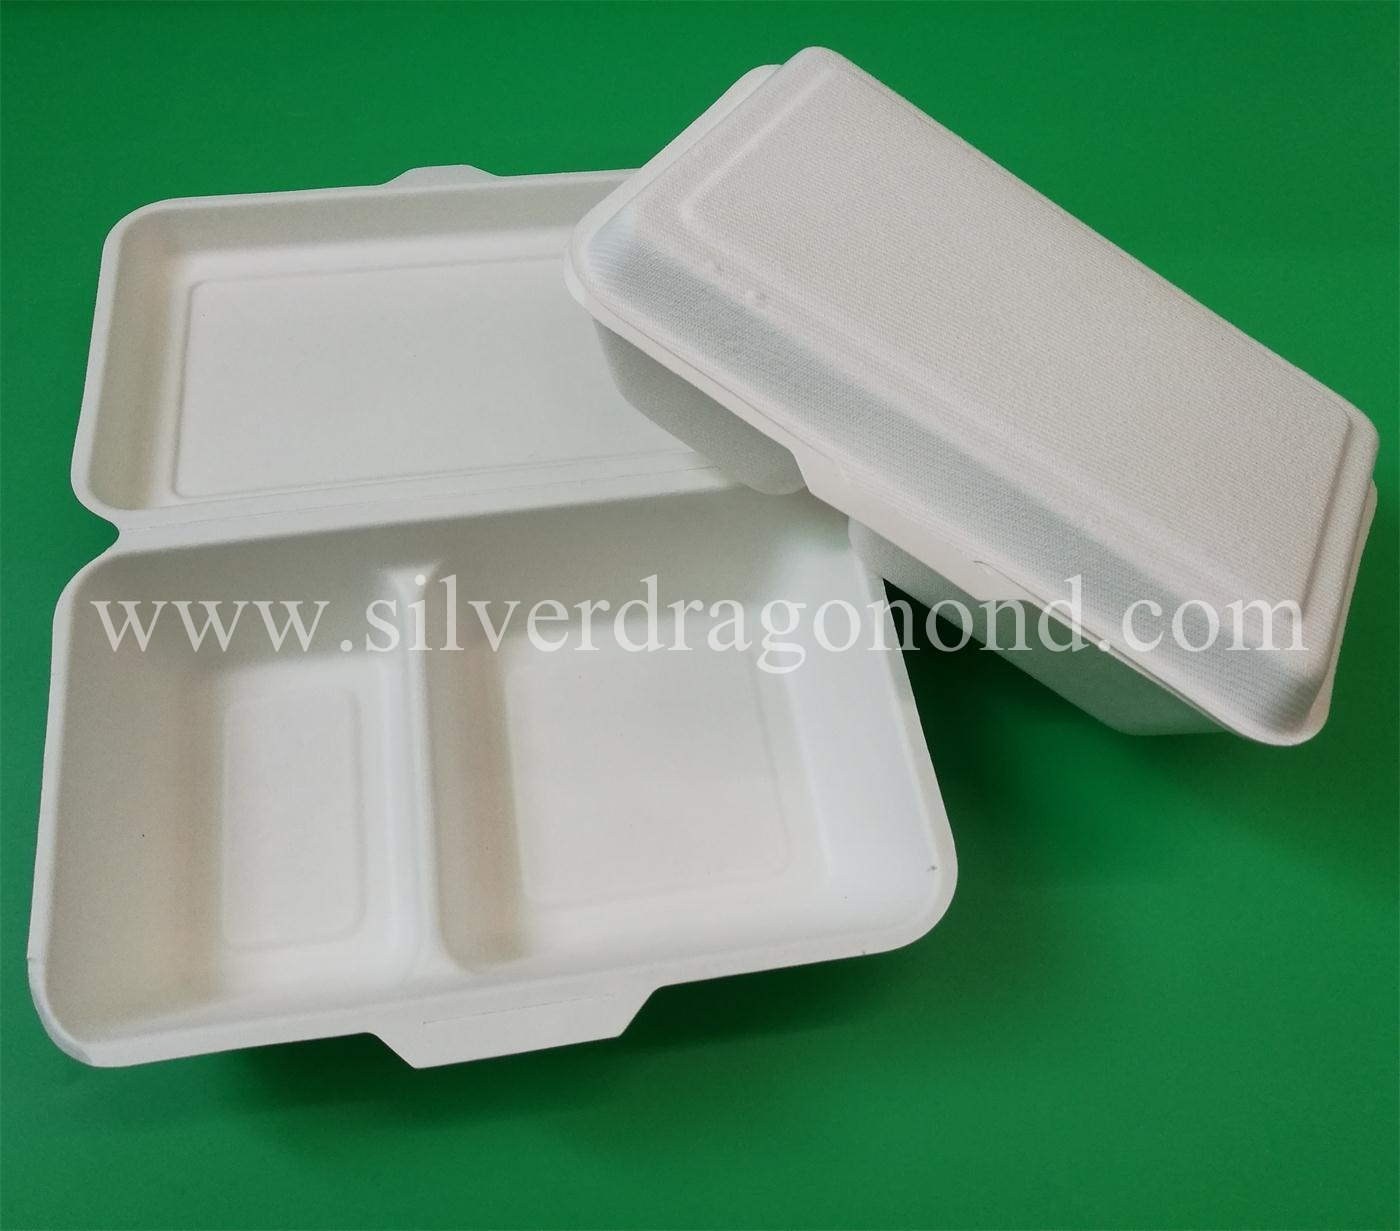 Biodegradable Compostable Sugarcane Bagasse Lunch Box 1000ml, 2comp Box